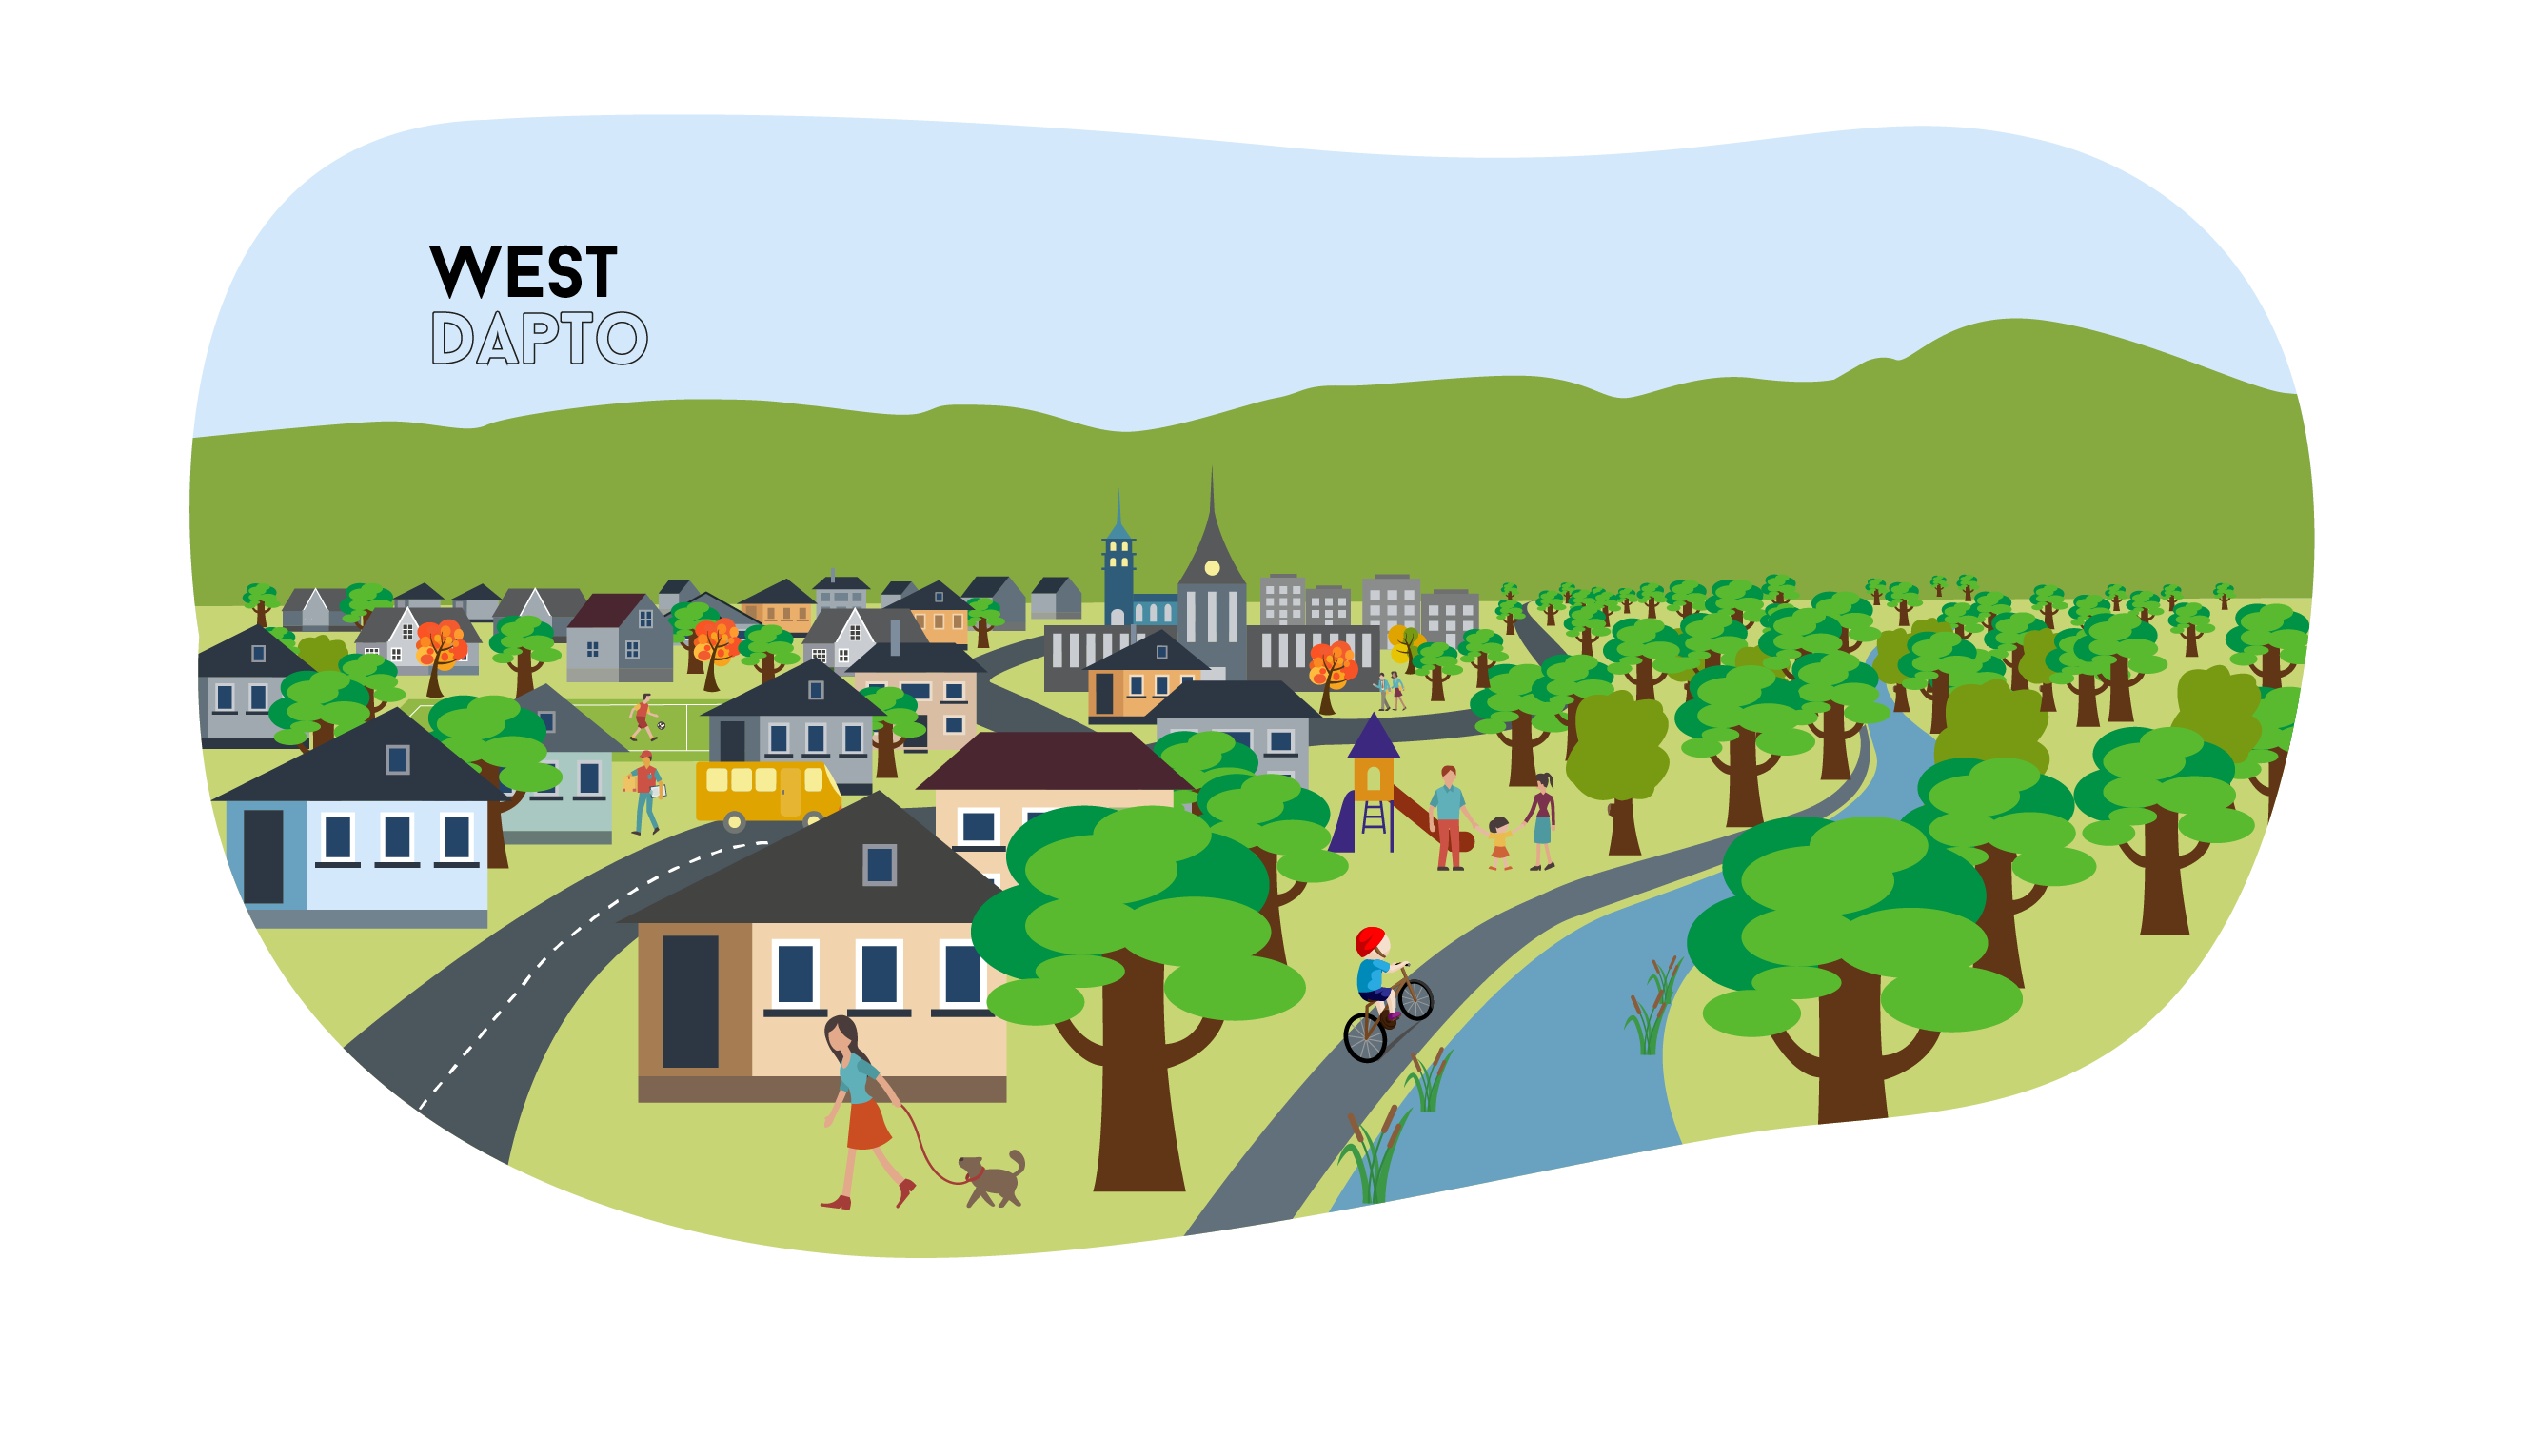 Community clipart urban area. Planning for west dapto